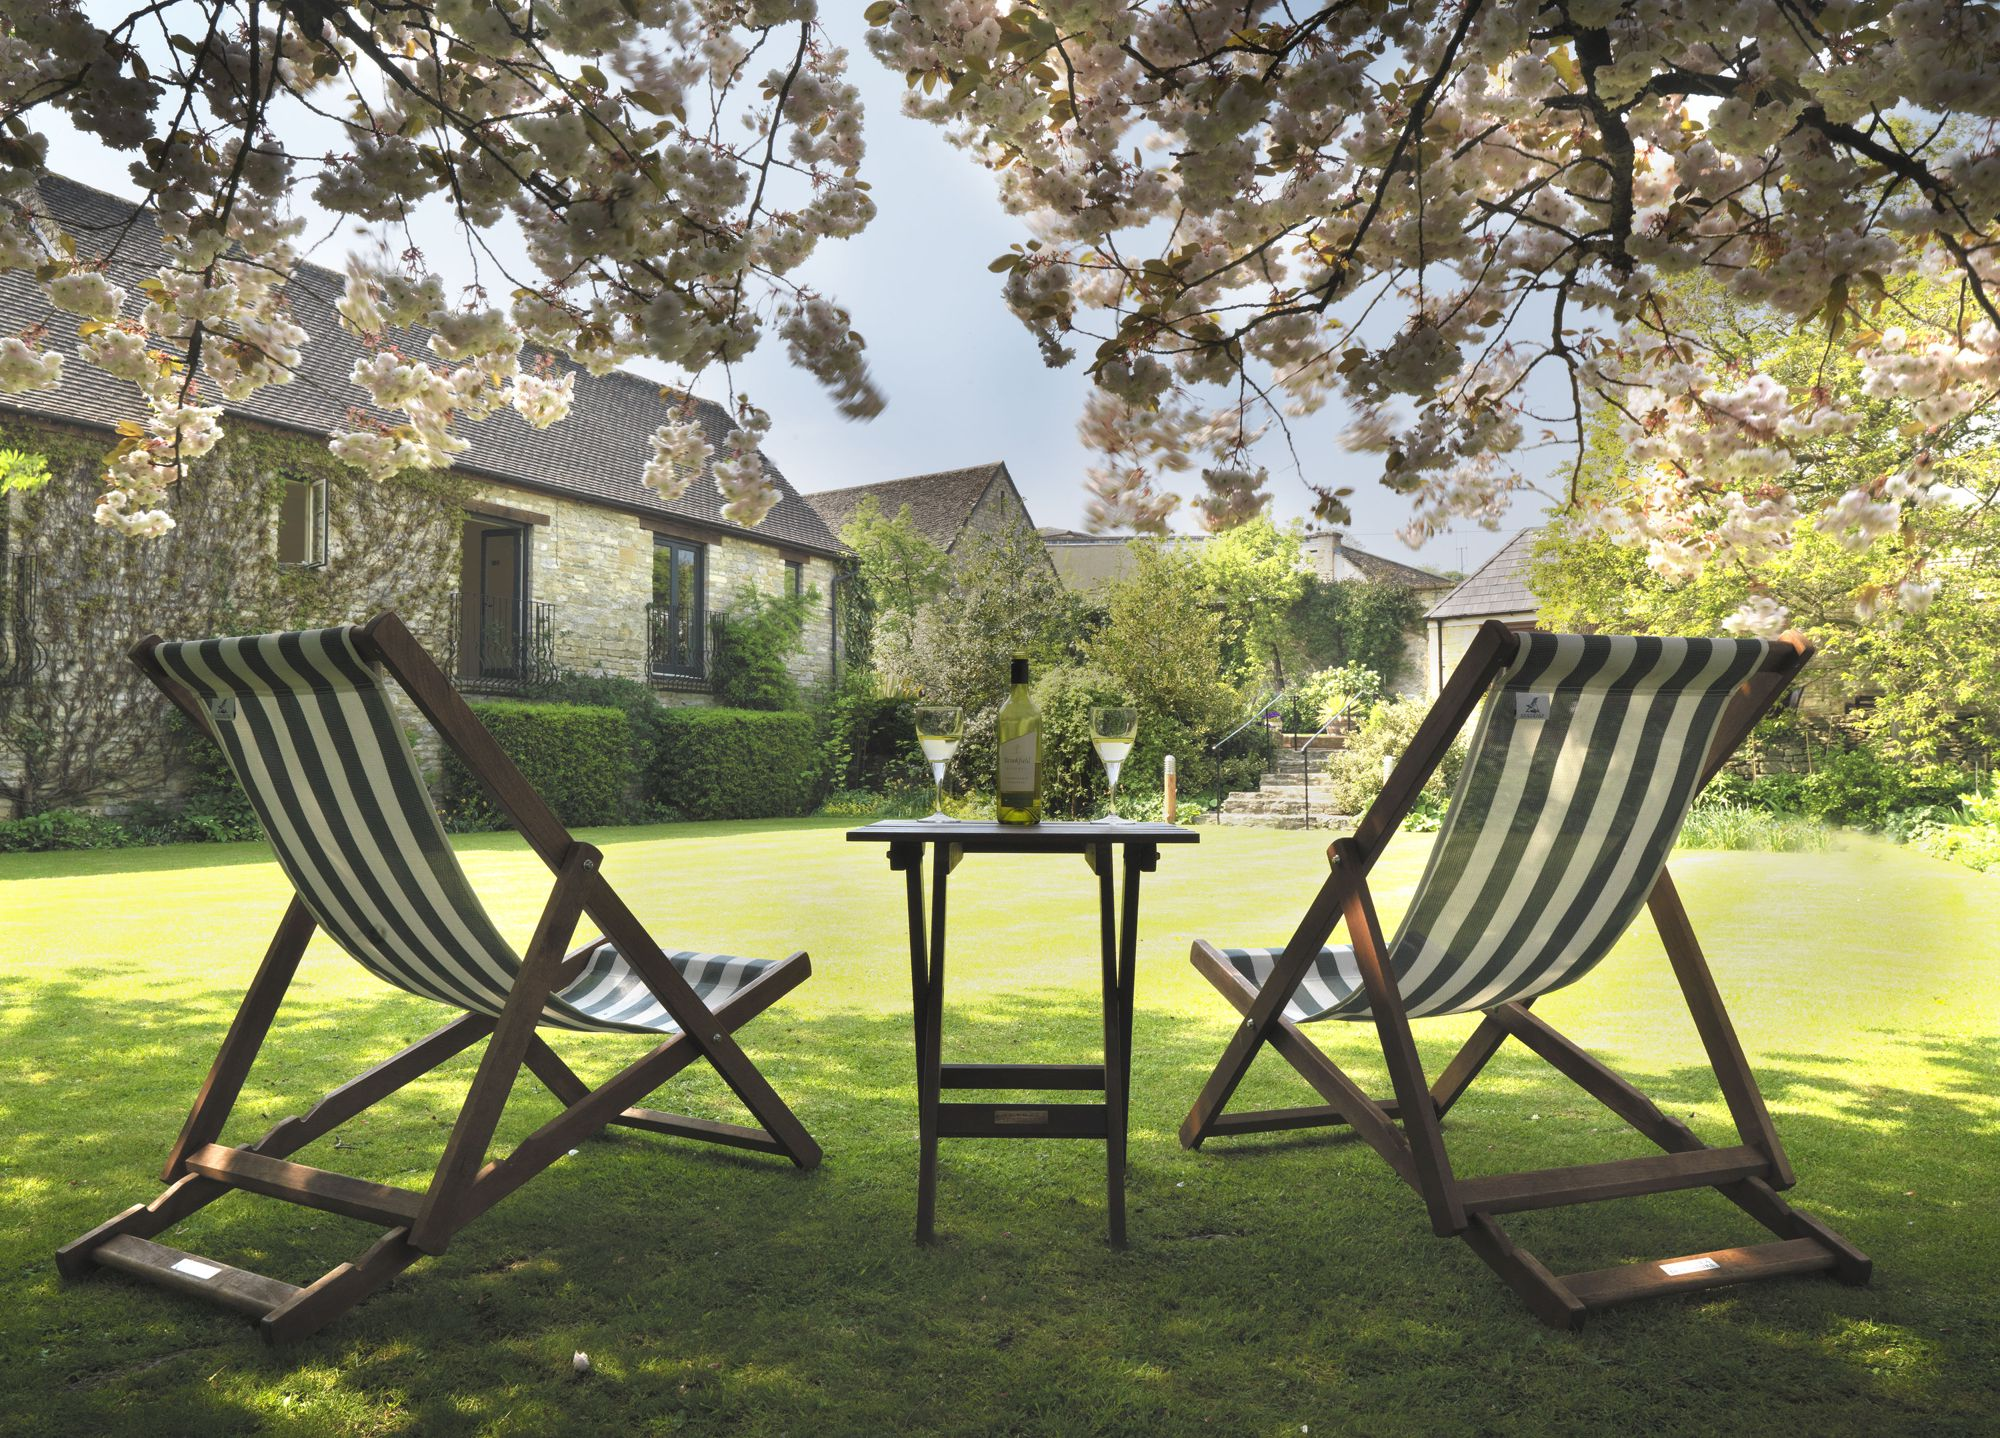 Hotels, Cottages, B&Bs & Glamping in The Cotswolds - Cool Places to Stay in the UK